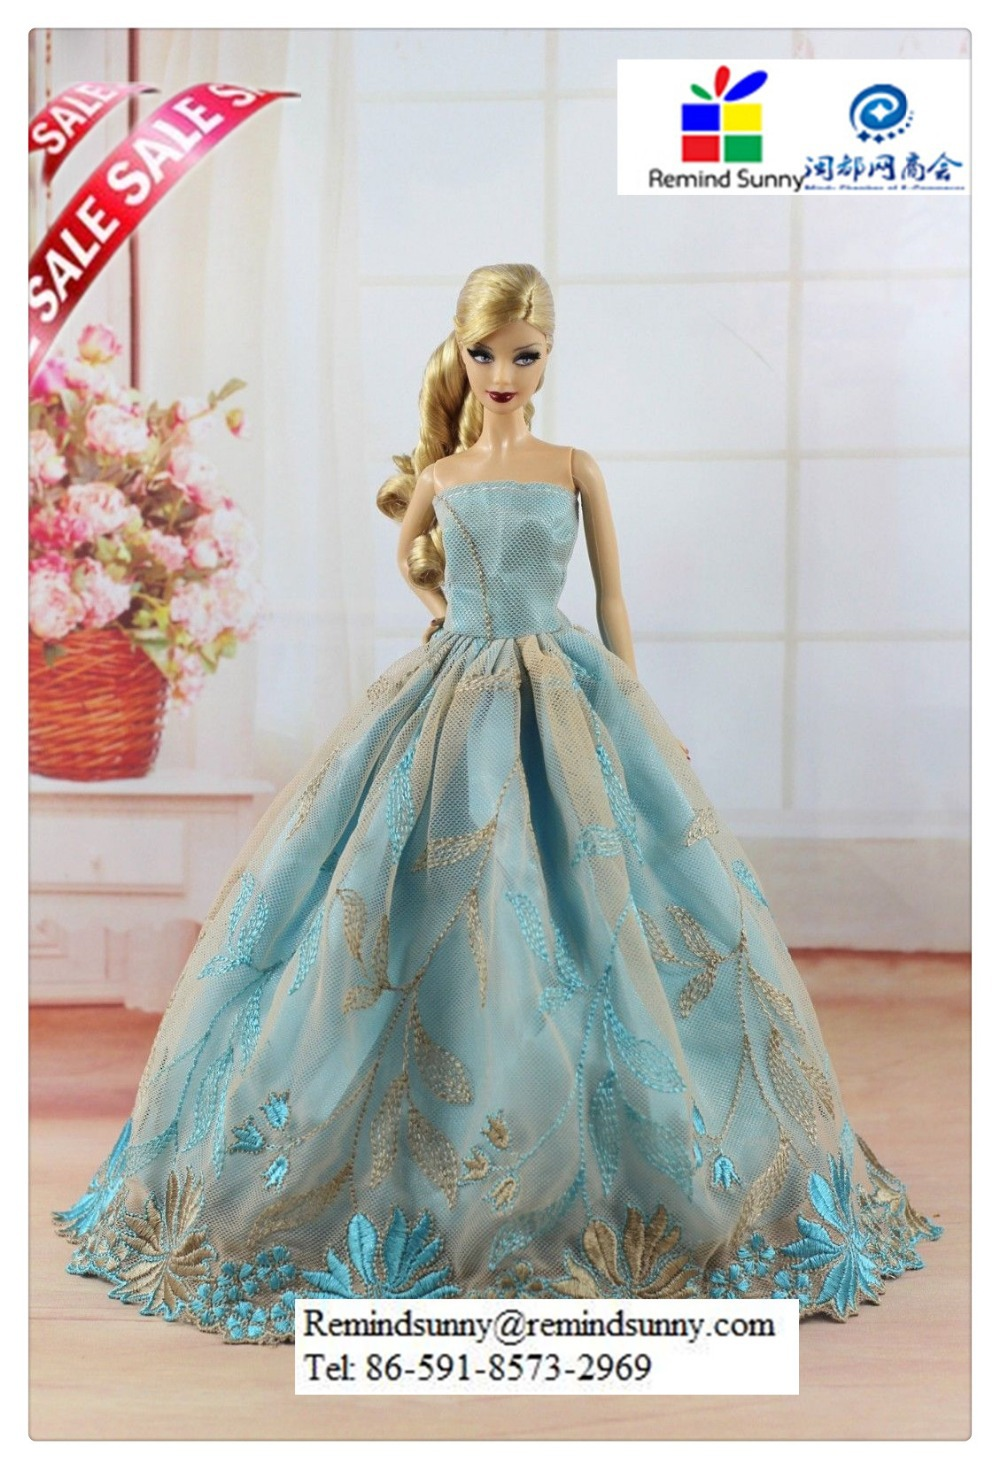 Lace Princess Party Wedding Dress Clothes/gown For Barbie Doll - Buy ...